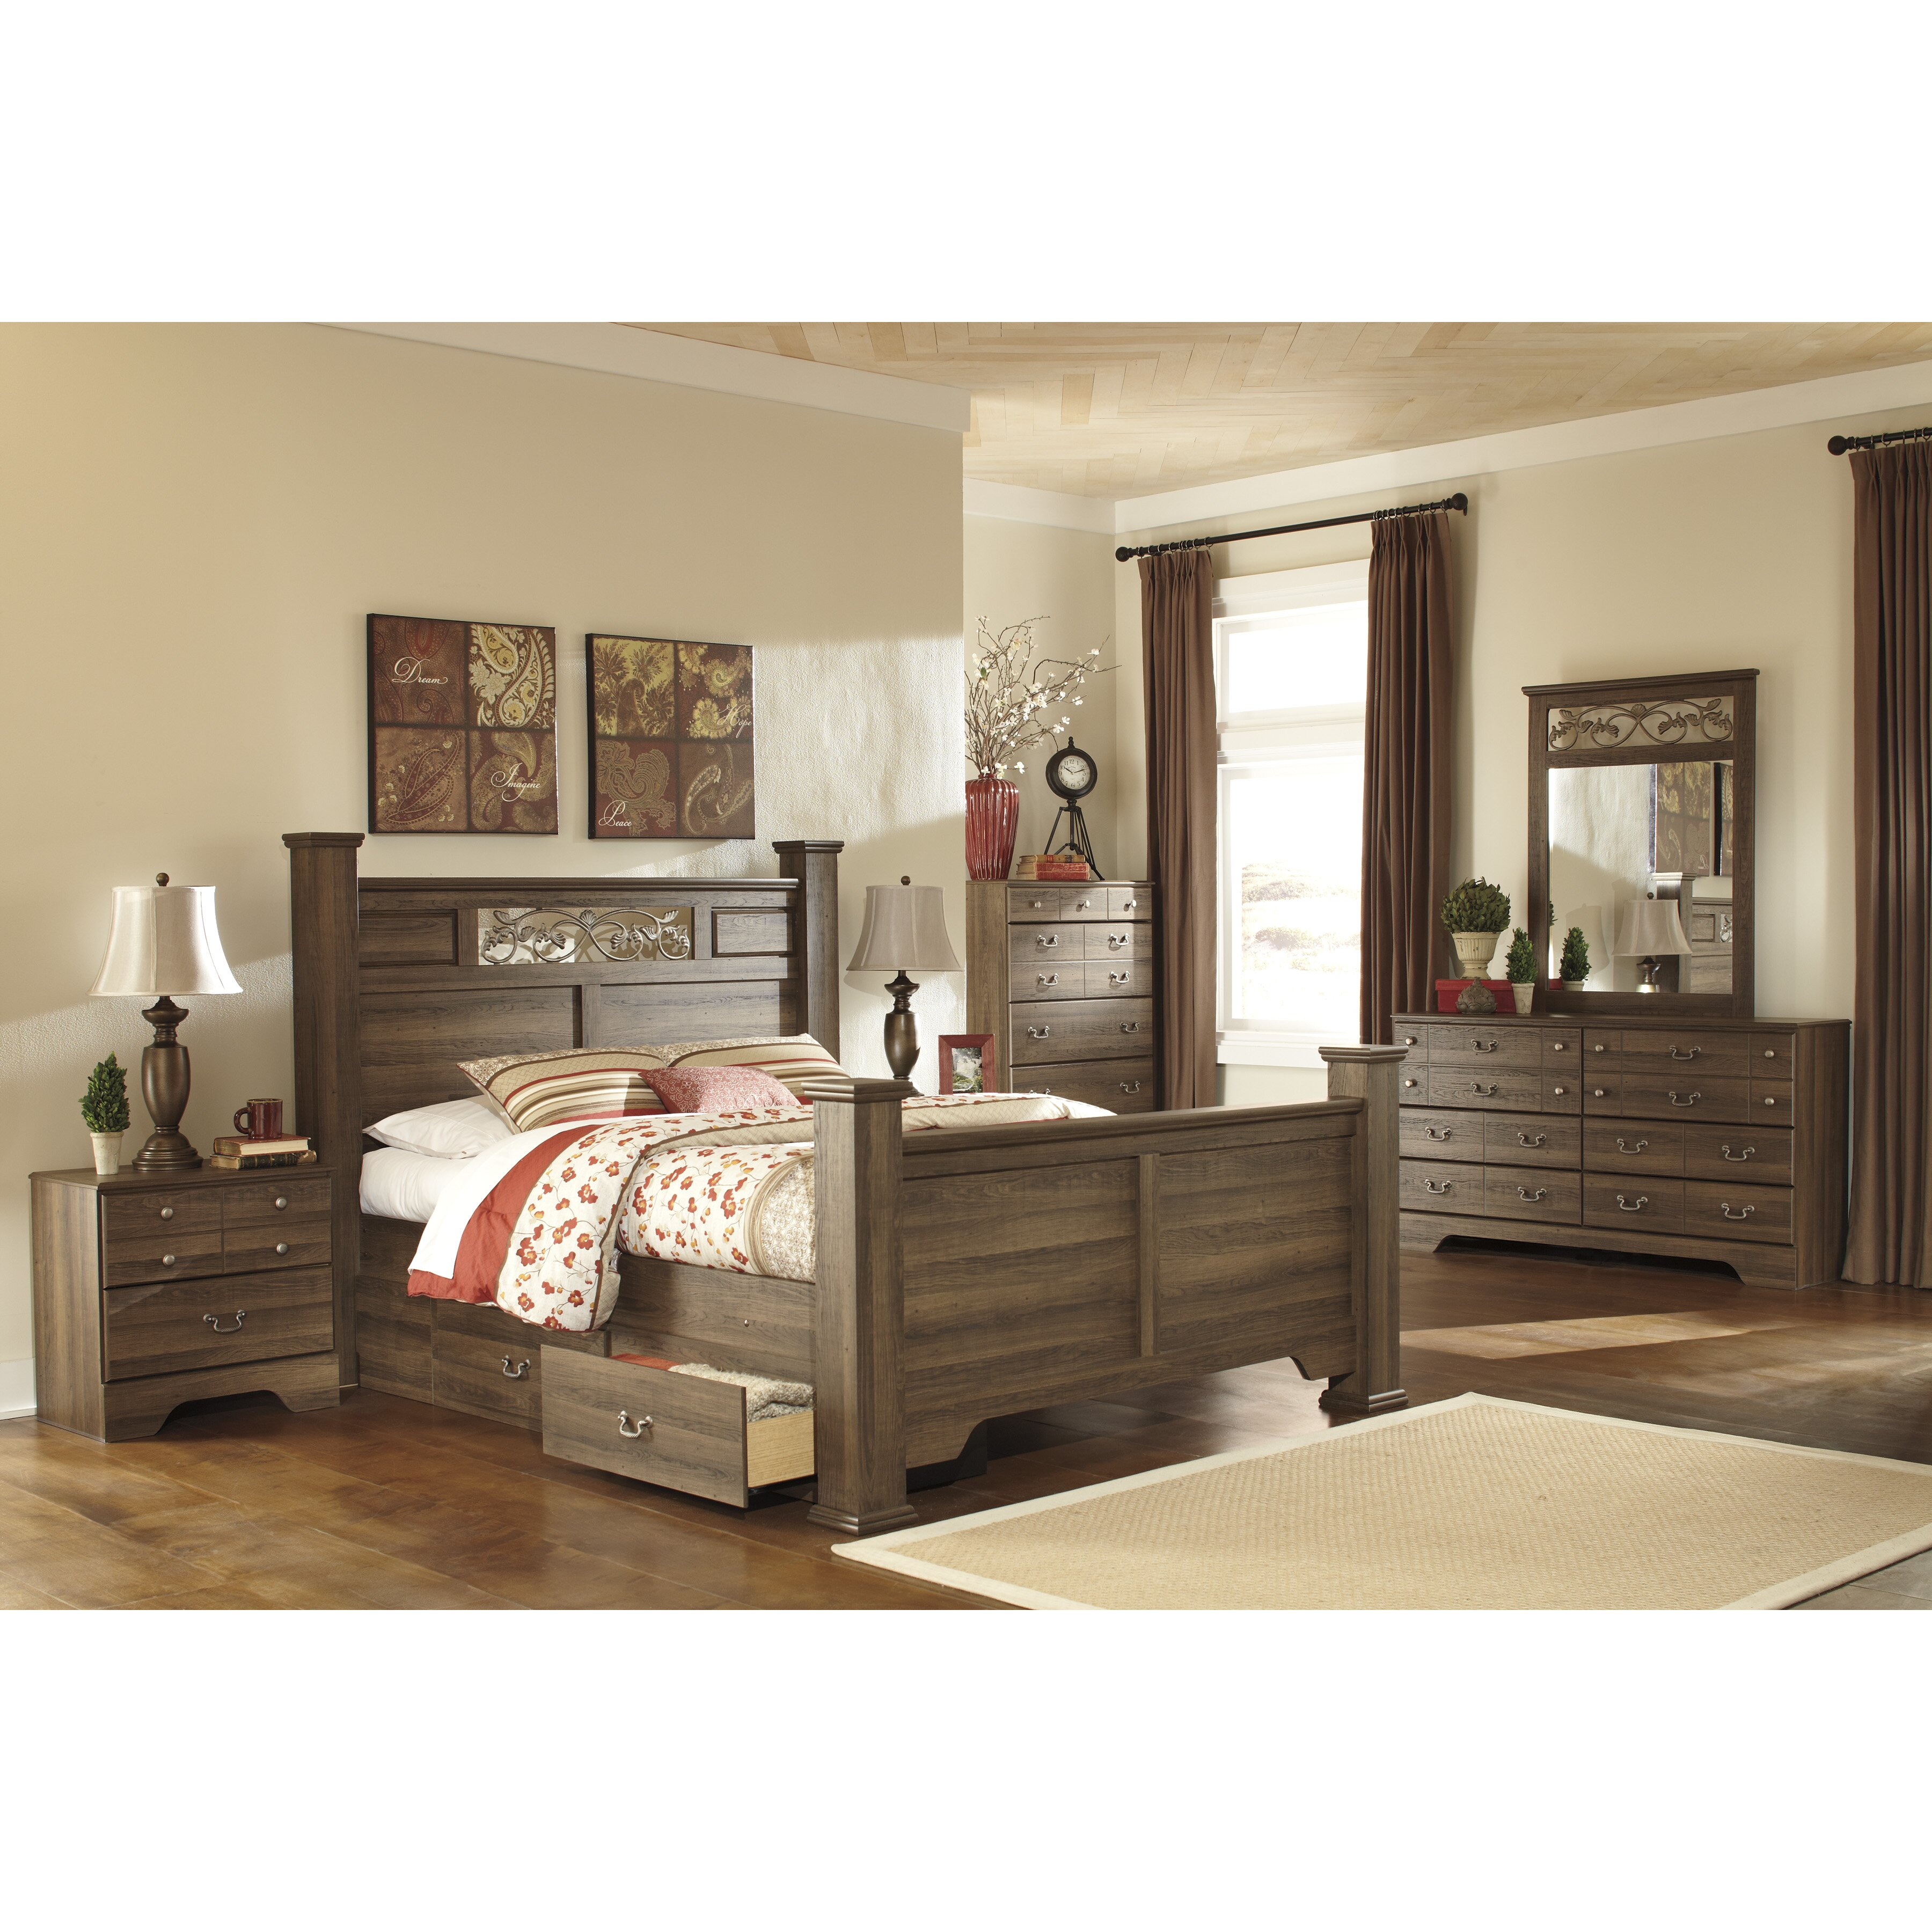 Signature design by ashley allymore 5 drawer chest - Ashley bedroom furniture reviews ...